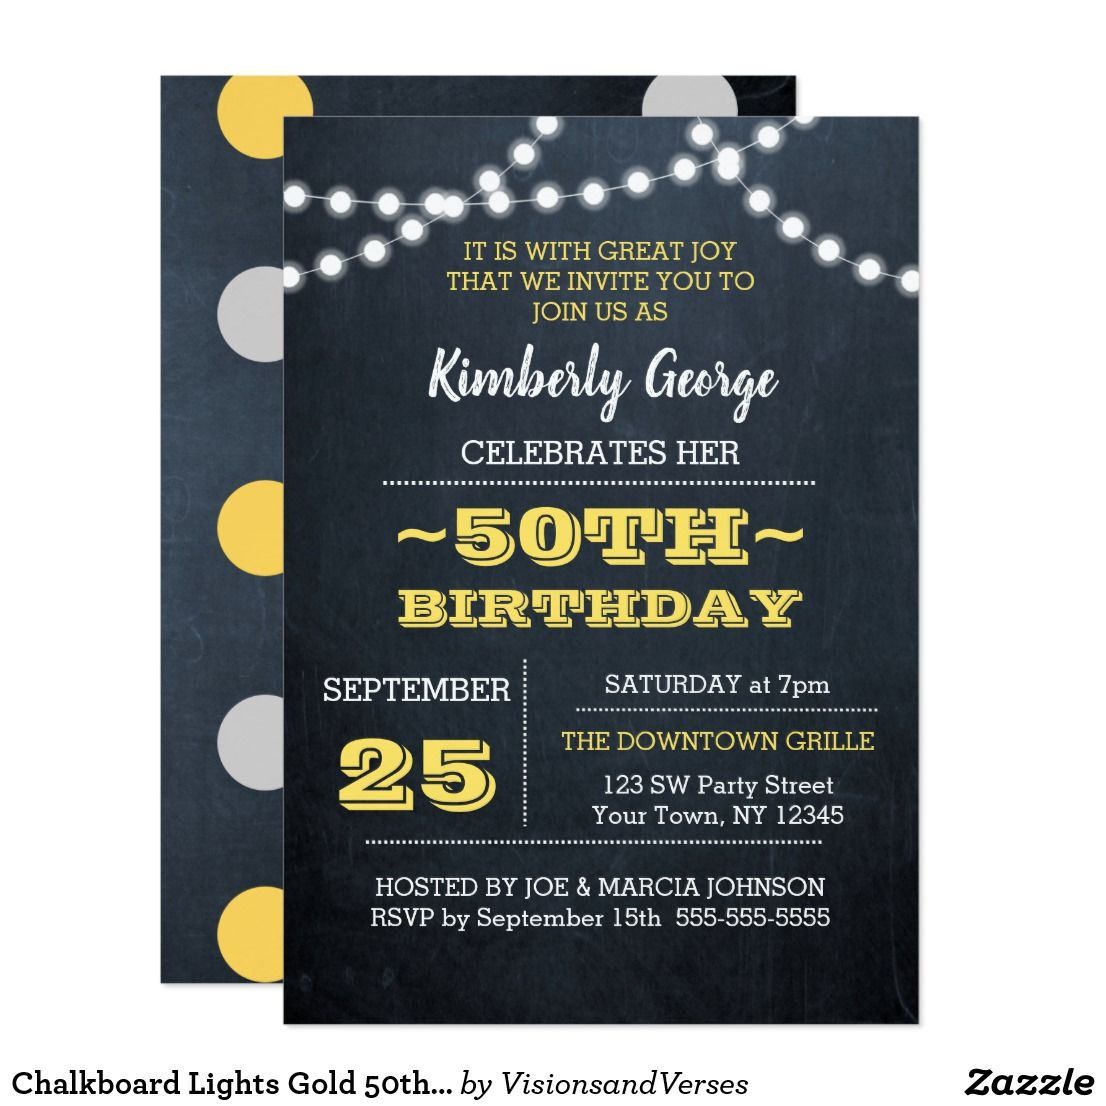 Chalkboard lights gold 50th birthday invitation chalkboard lights gold 50th birthday invitation with a chalkboard and string lights background these invitations stopboris Choice Image